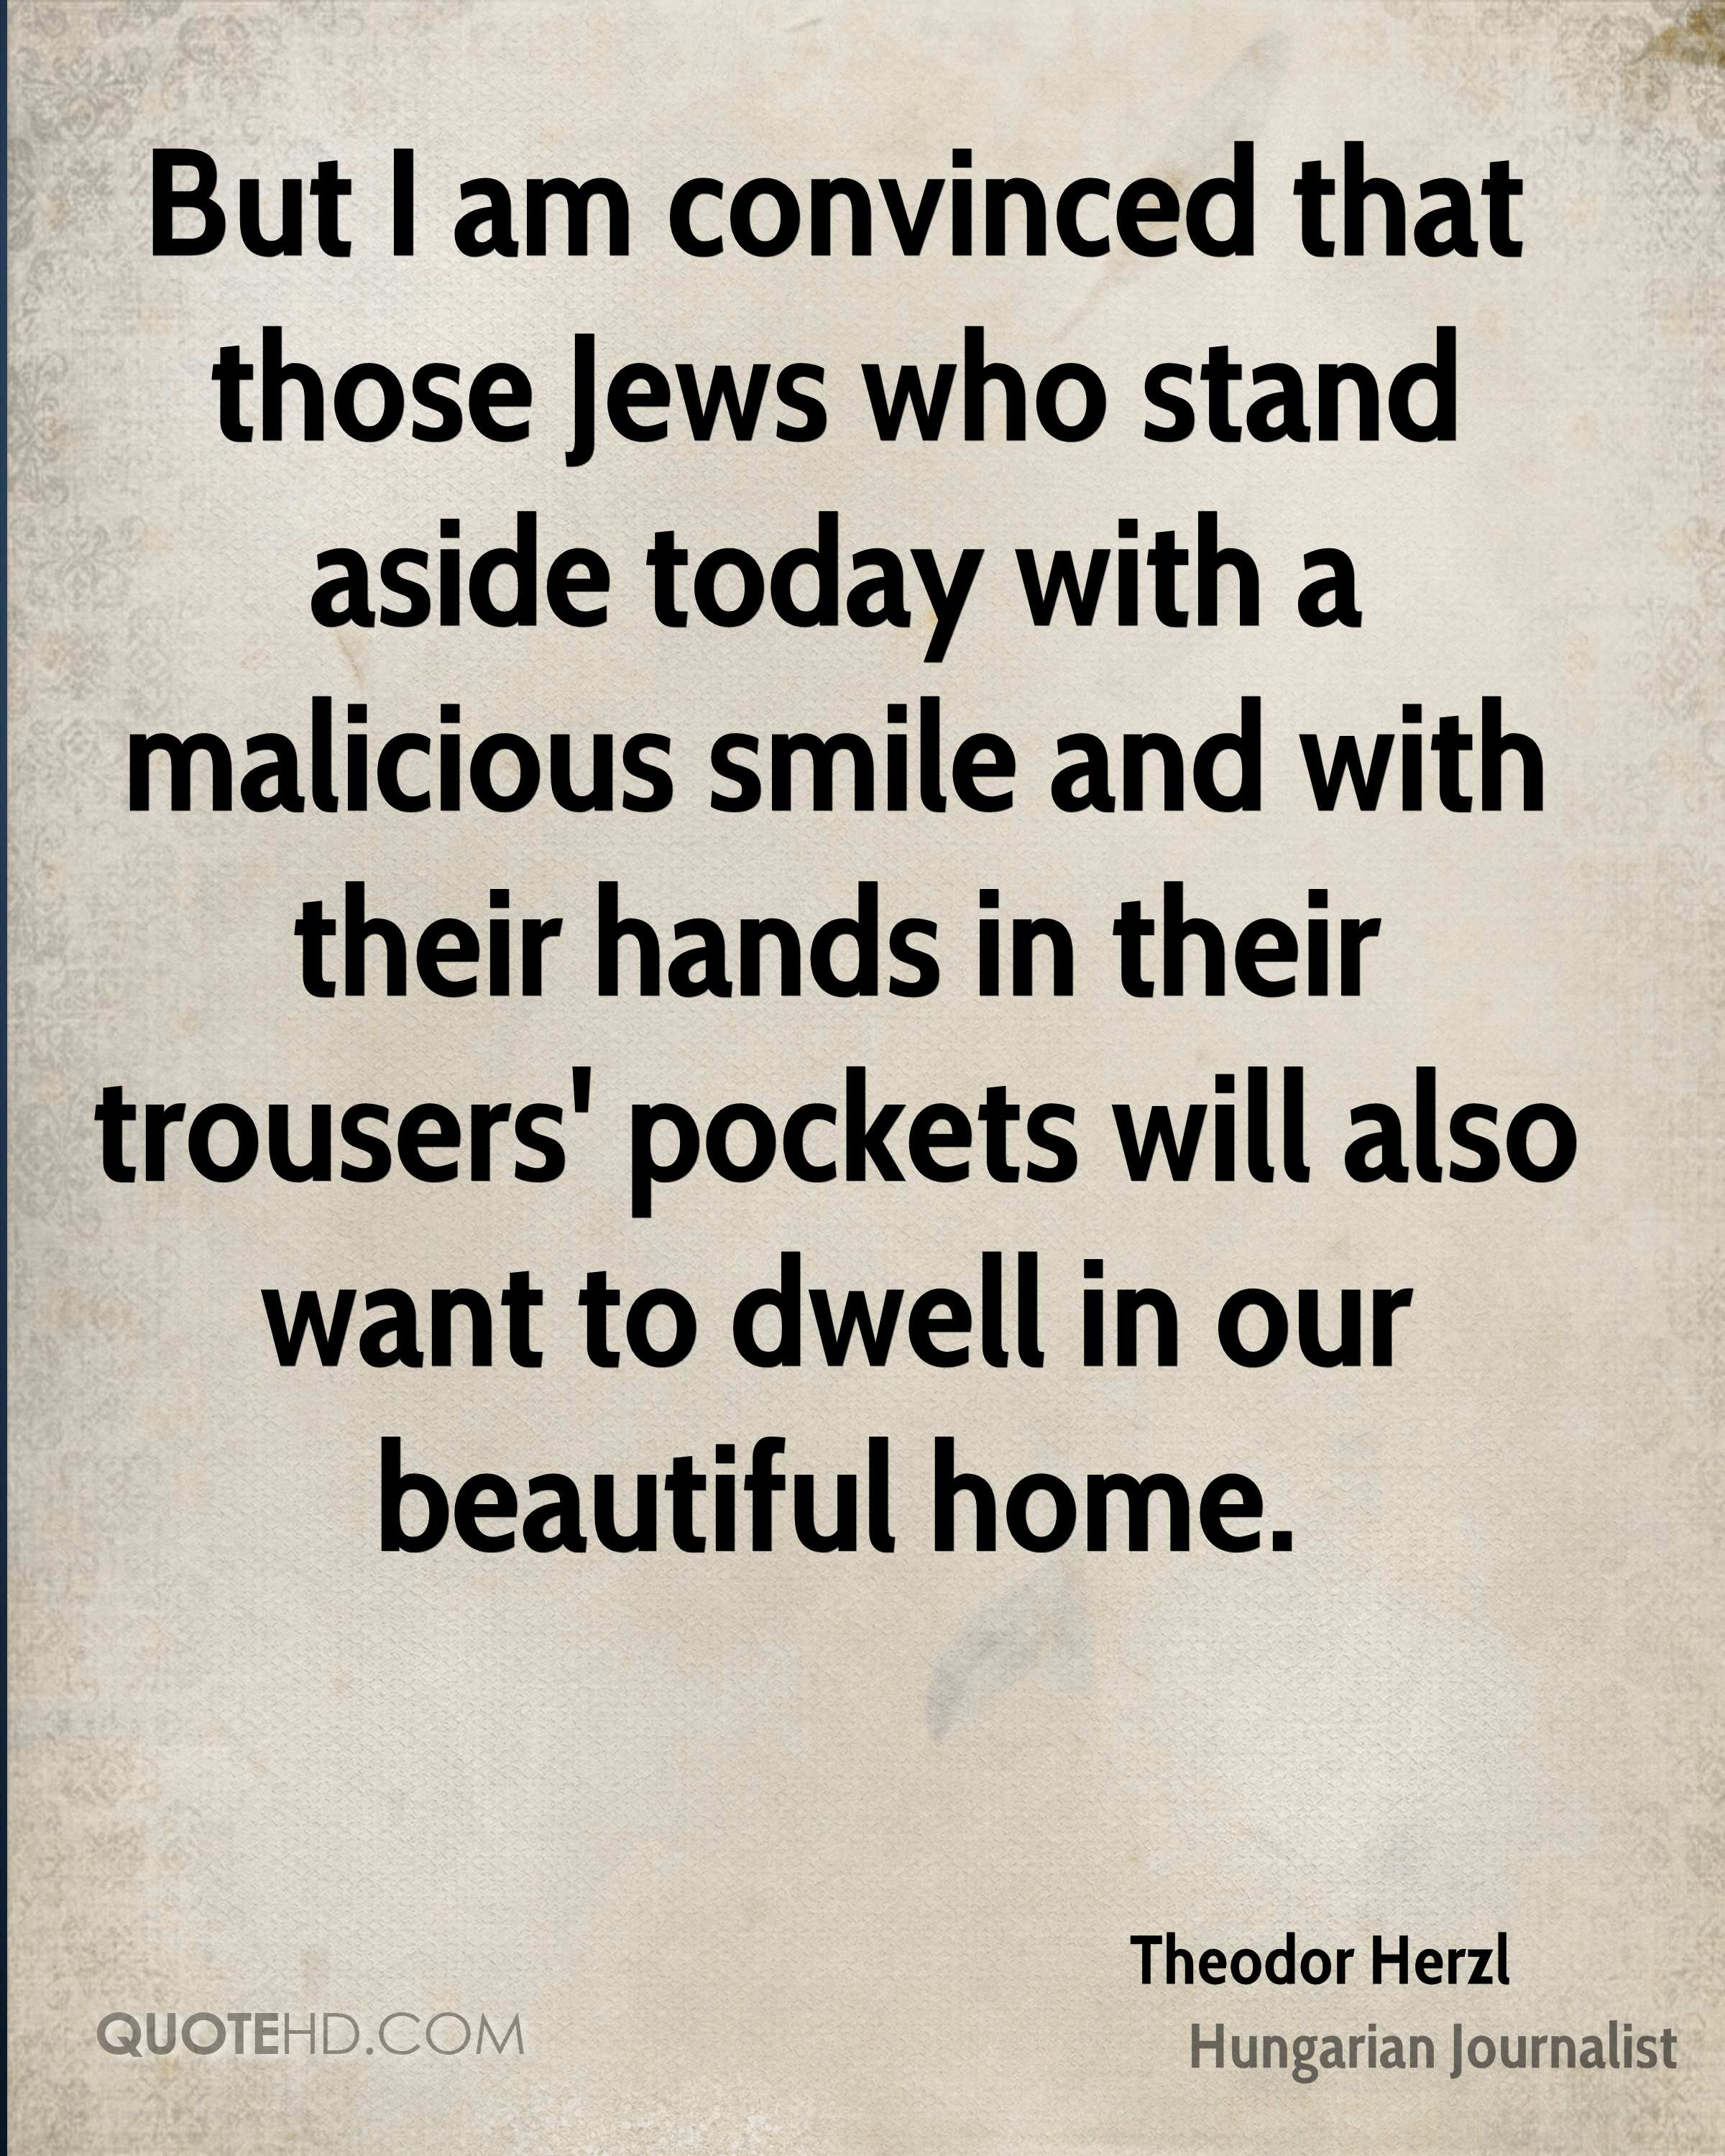 But I am convinced that those Jews who stand aside today with a malicious smile and with their hands in their trousers' pockets will also want to dwell in our beautiful home.